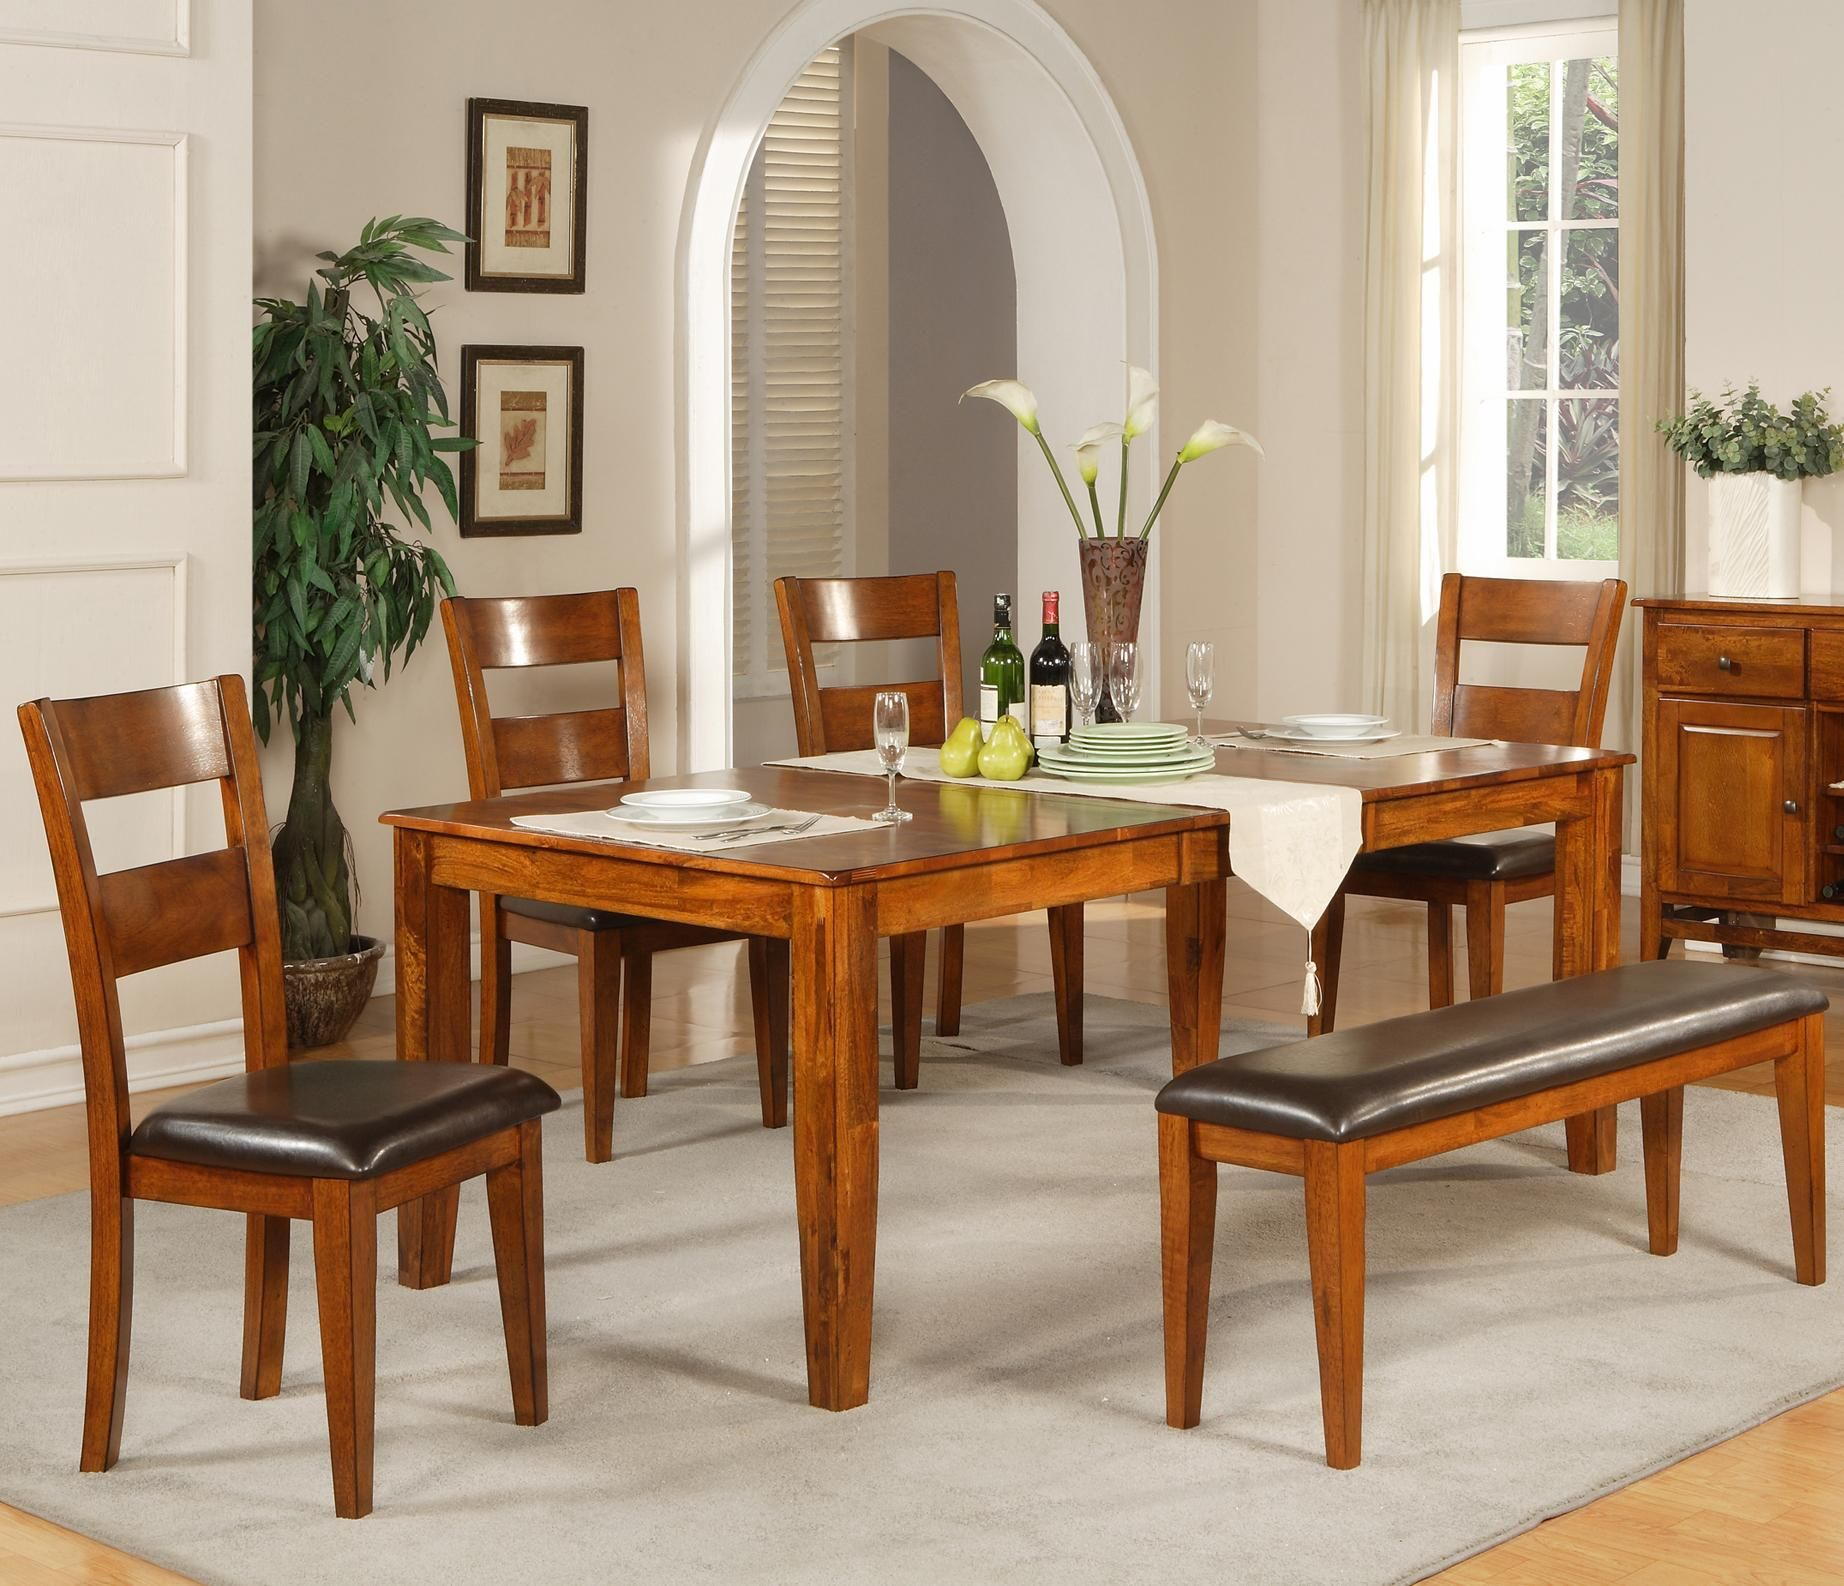 Mango 6 Pc. Solid Mango Table Set with Bench by Steve Silver ...